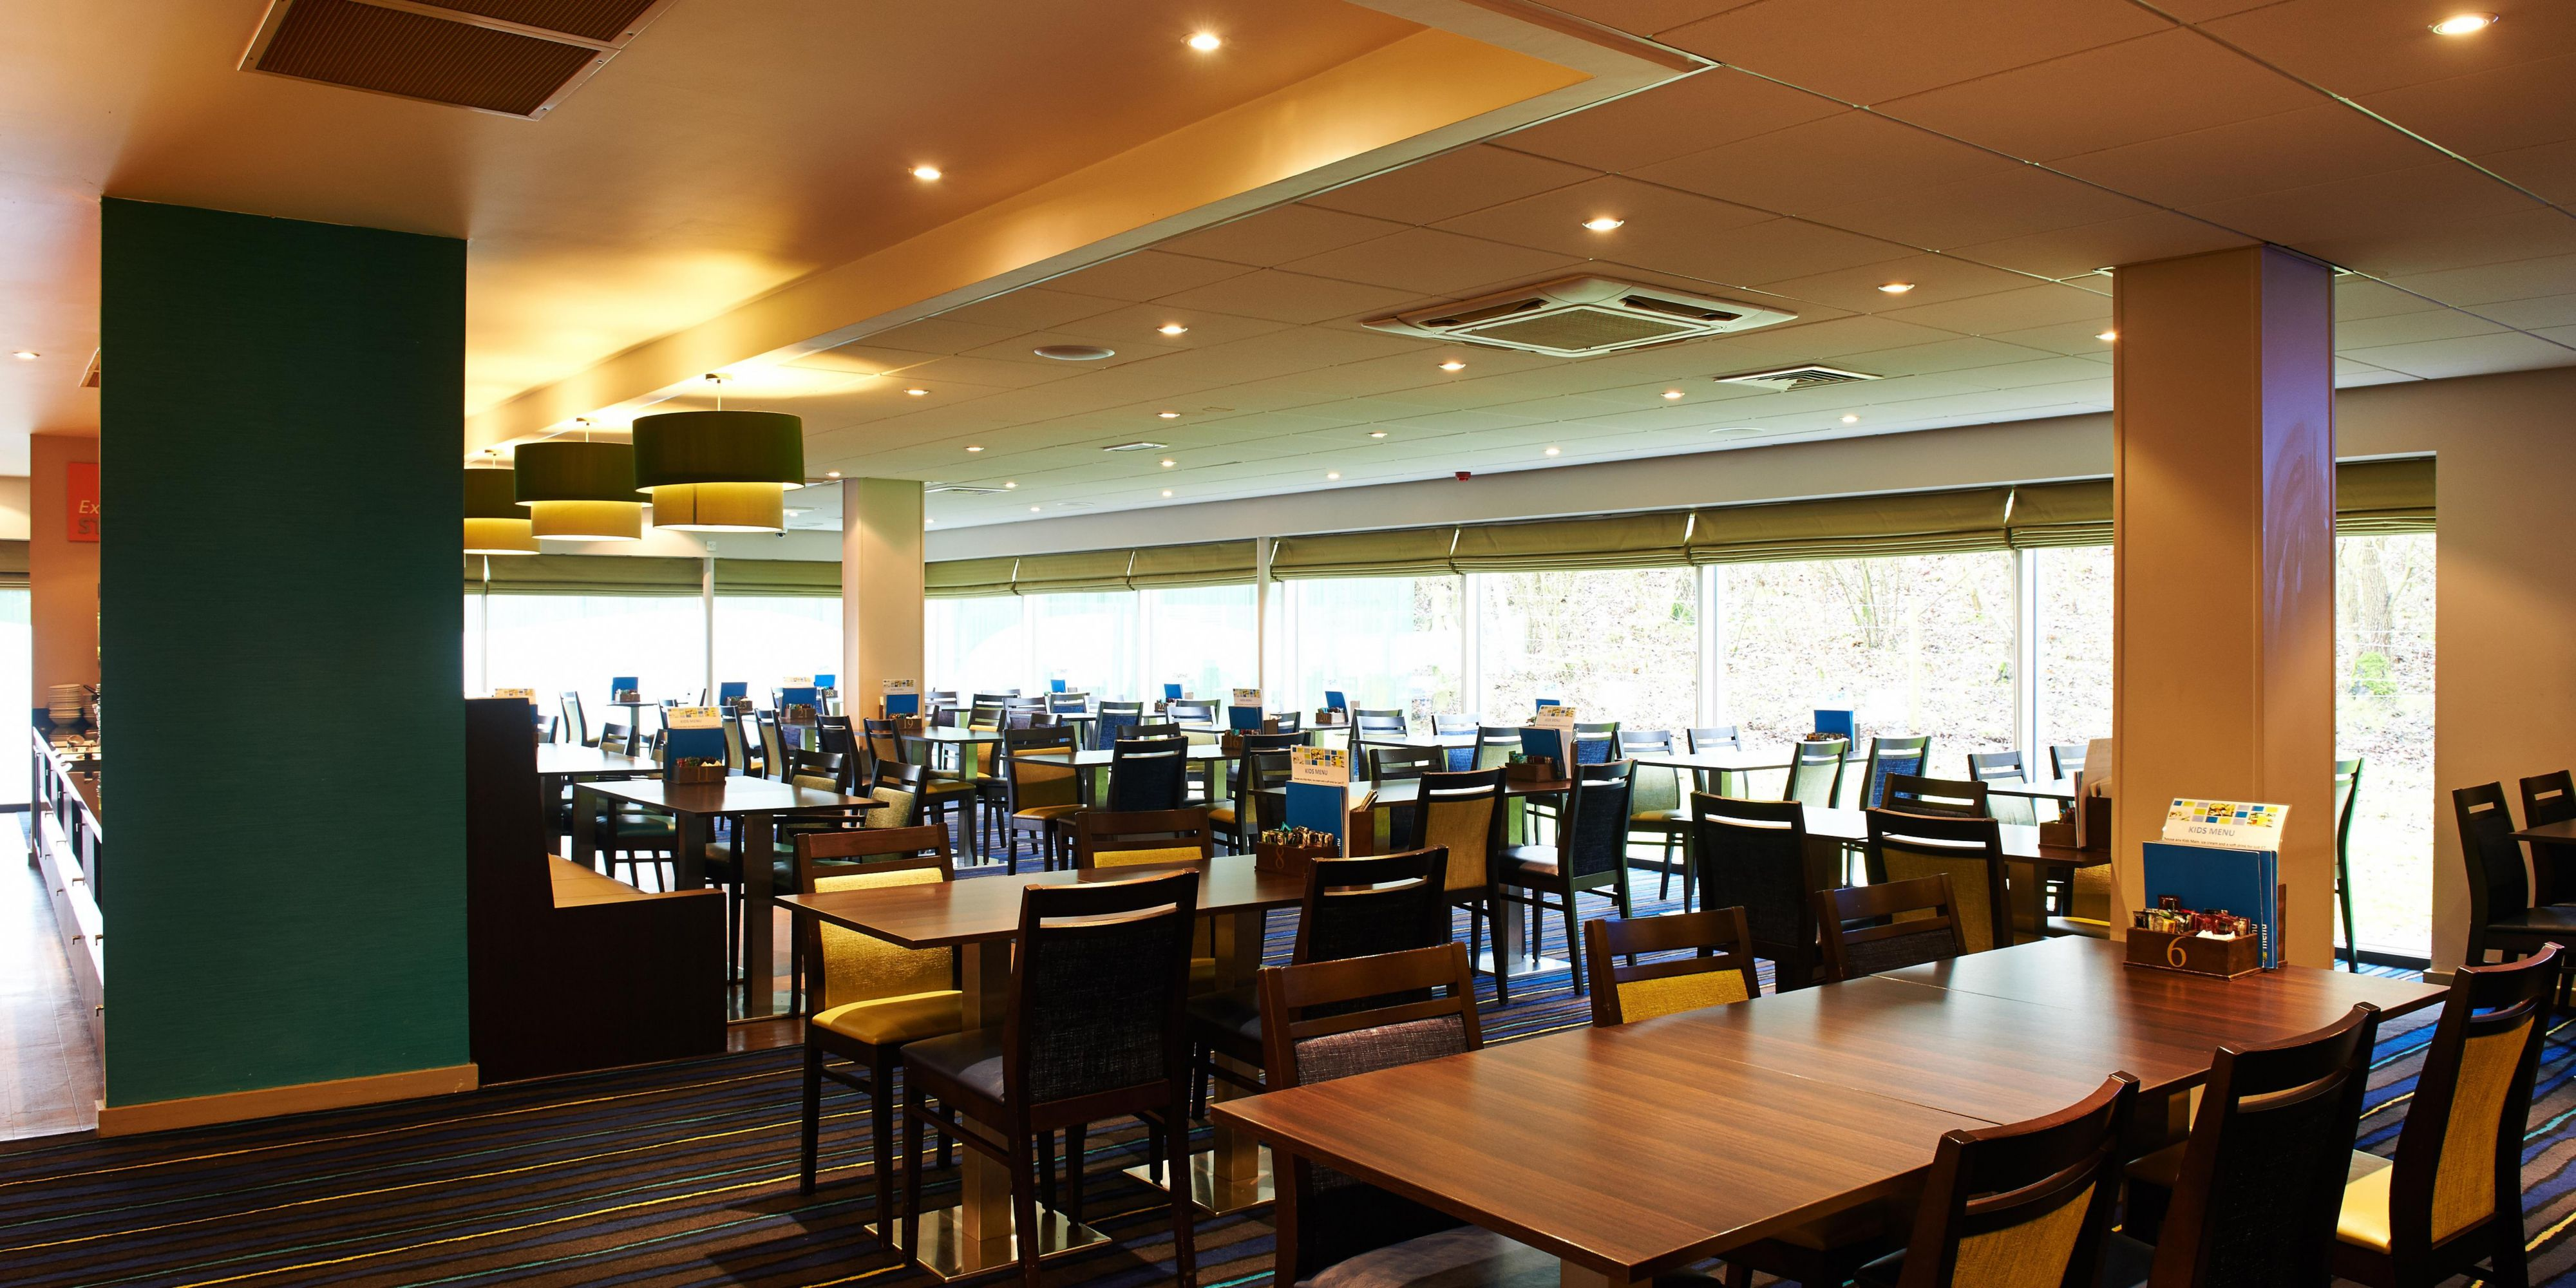 Holiday Inn Express Manchester 4320176712 2x1